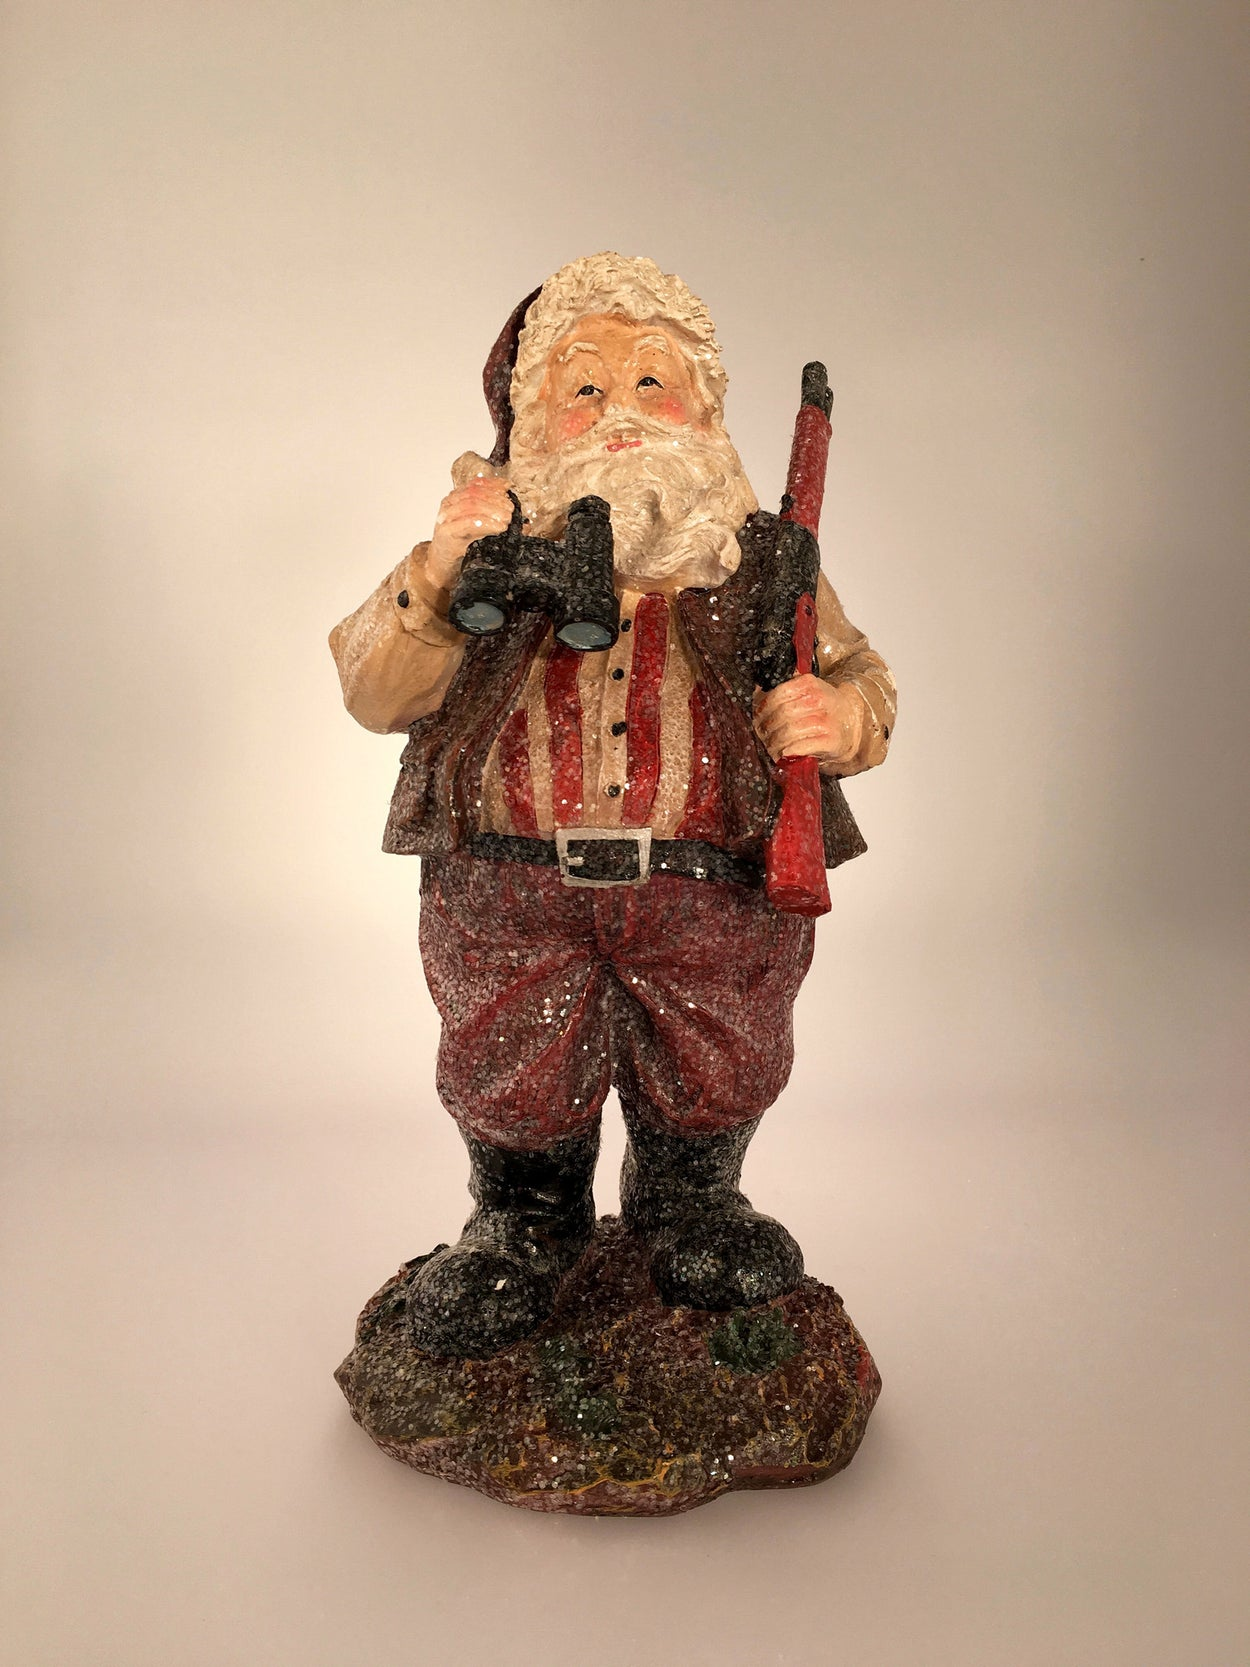 Hunting Santa Unique Christmas Tree Topper - Summit Arbor